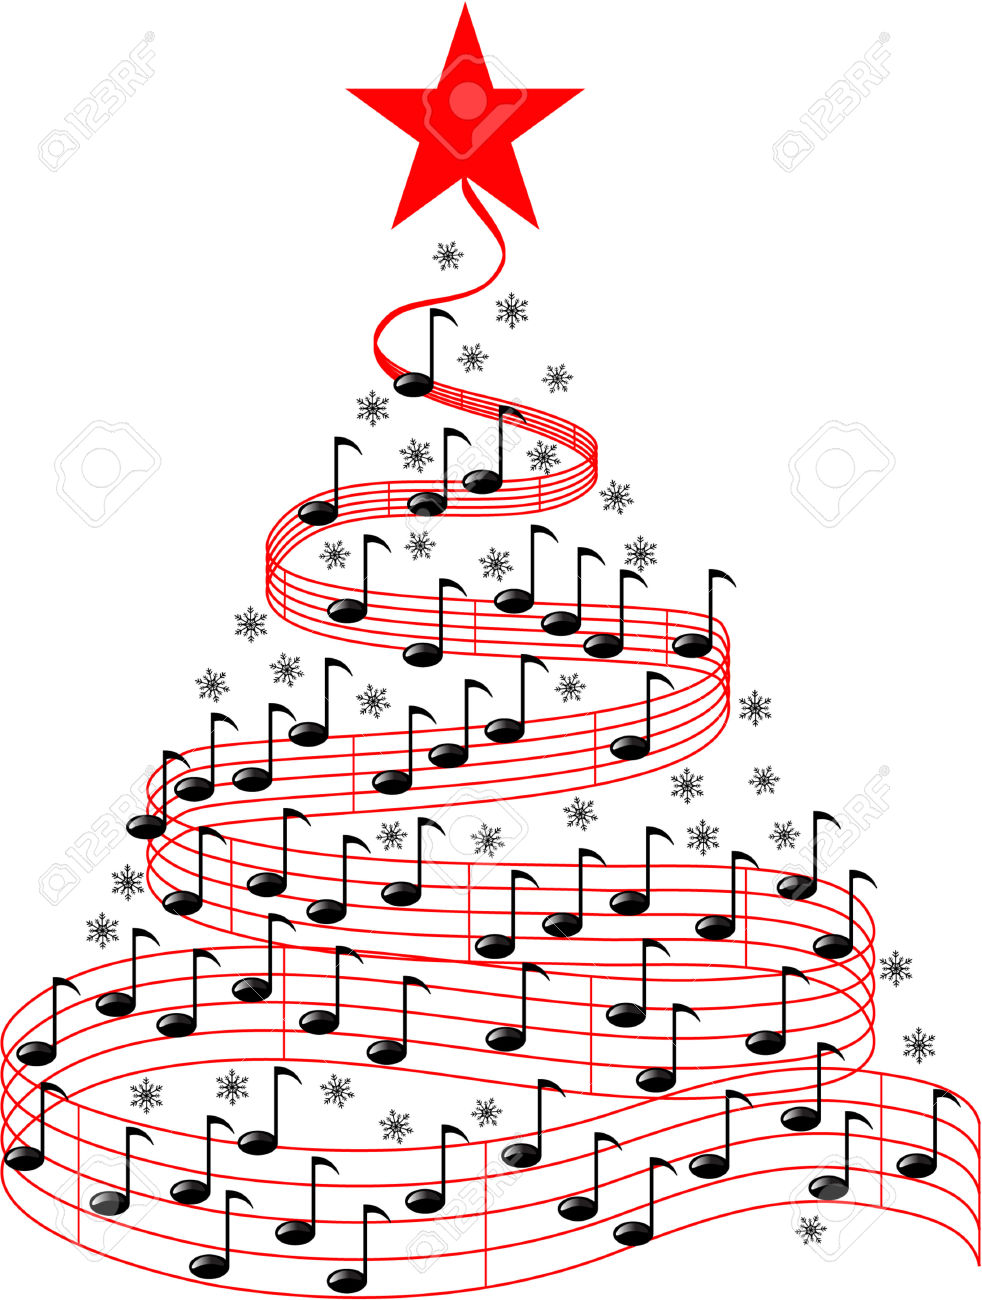 Christmas Music Notes Clipart .-Christmas music notes clipart .-8